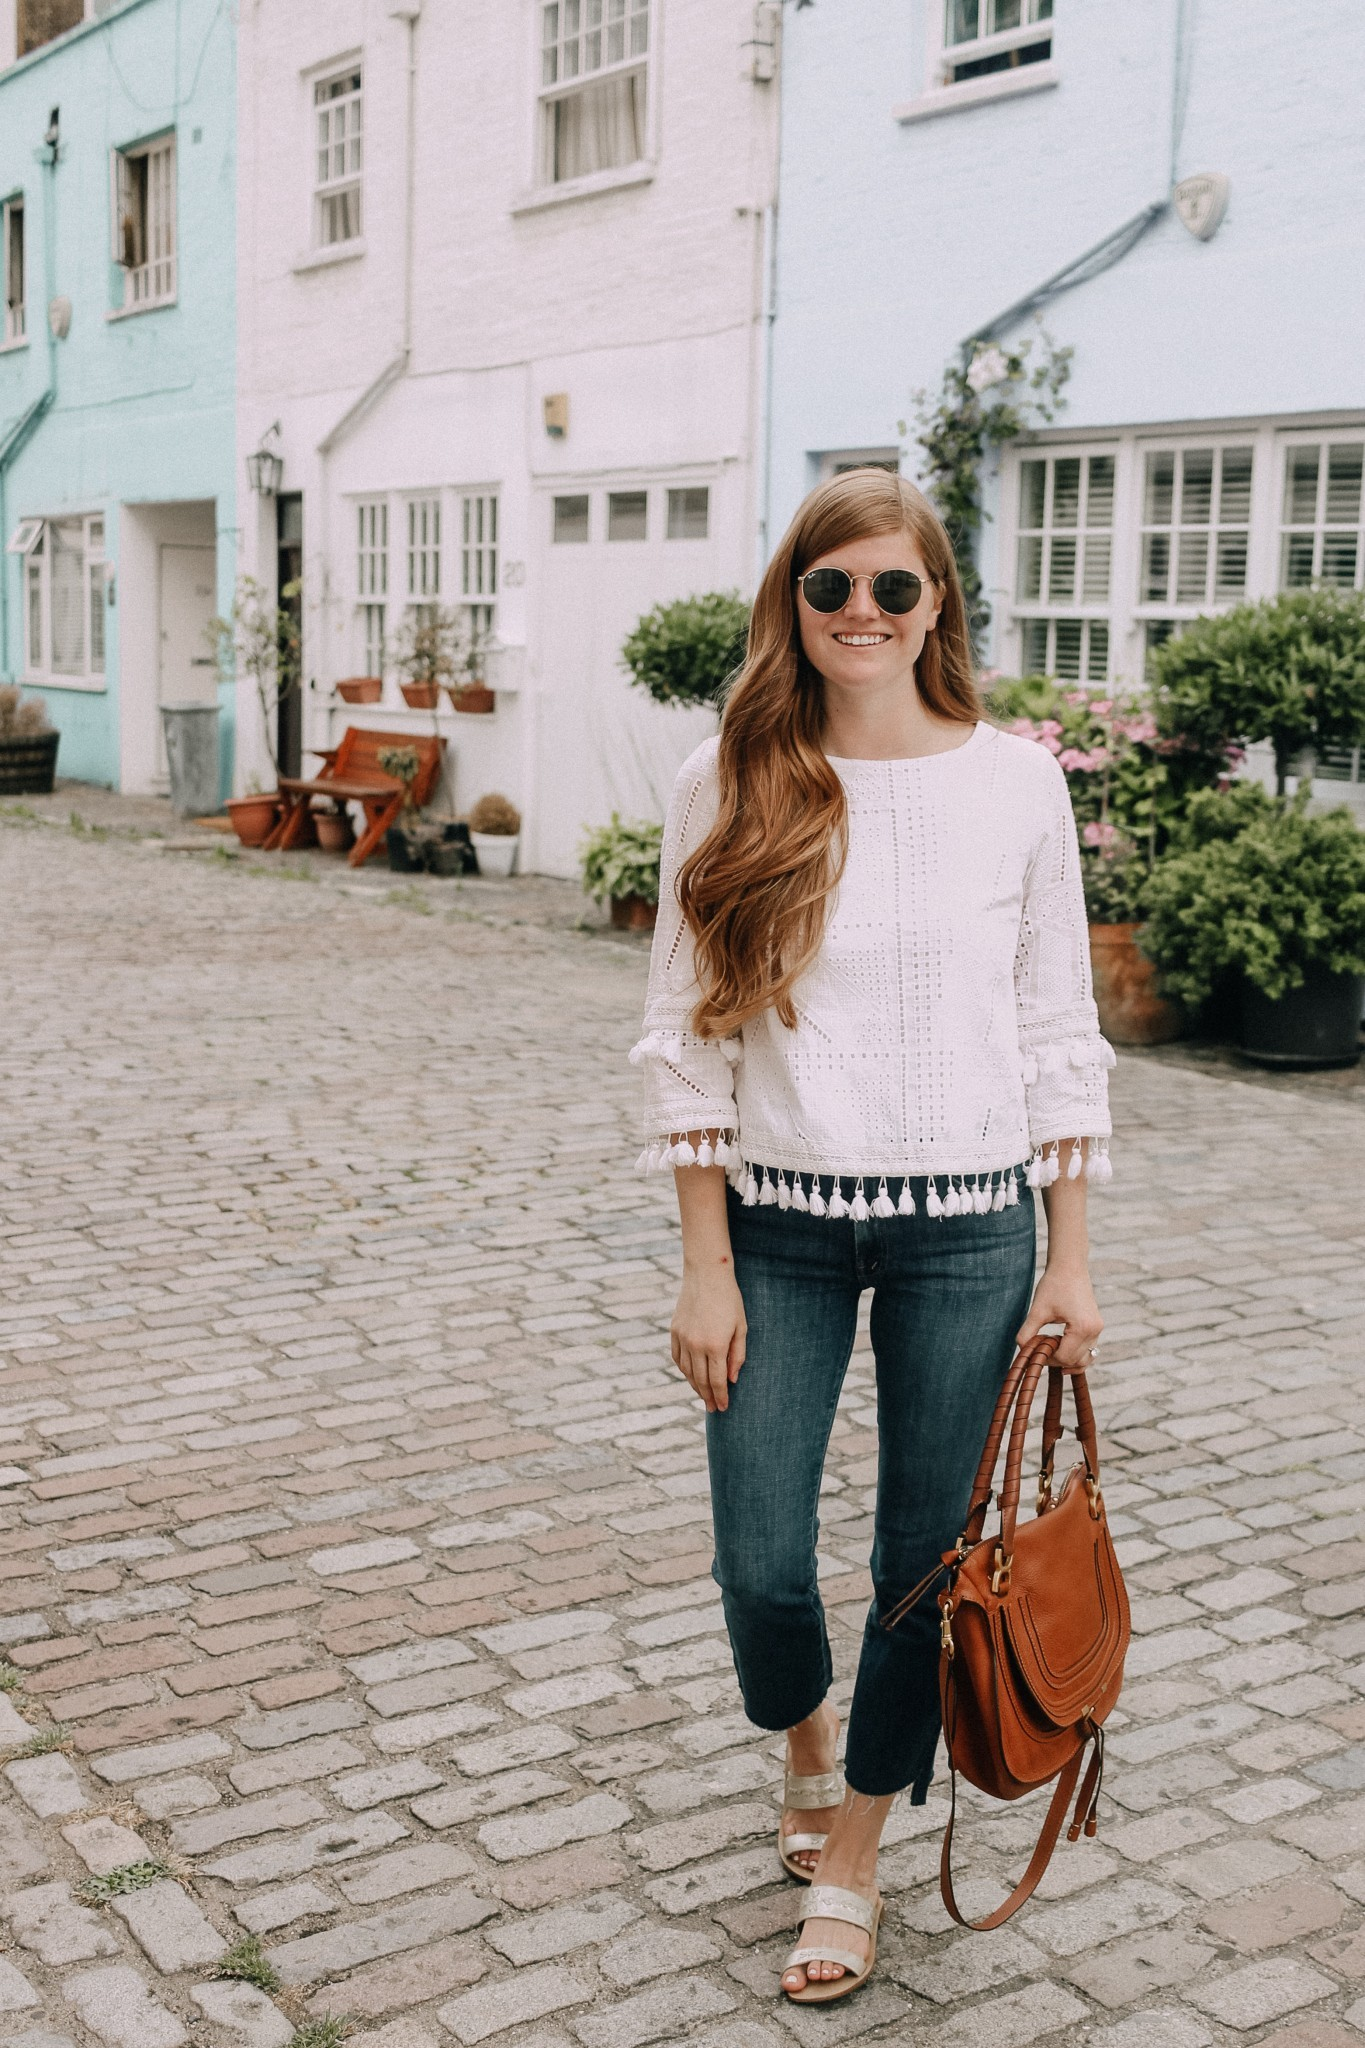 Lifestyle blogger Mollie Moore shares what it's like to be a London blogger